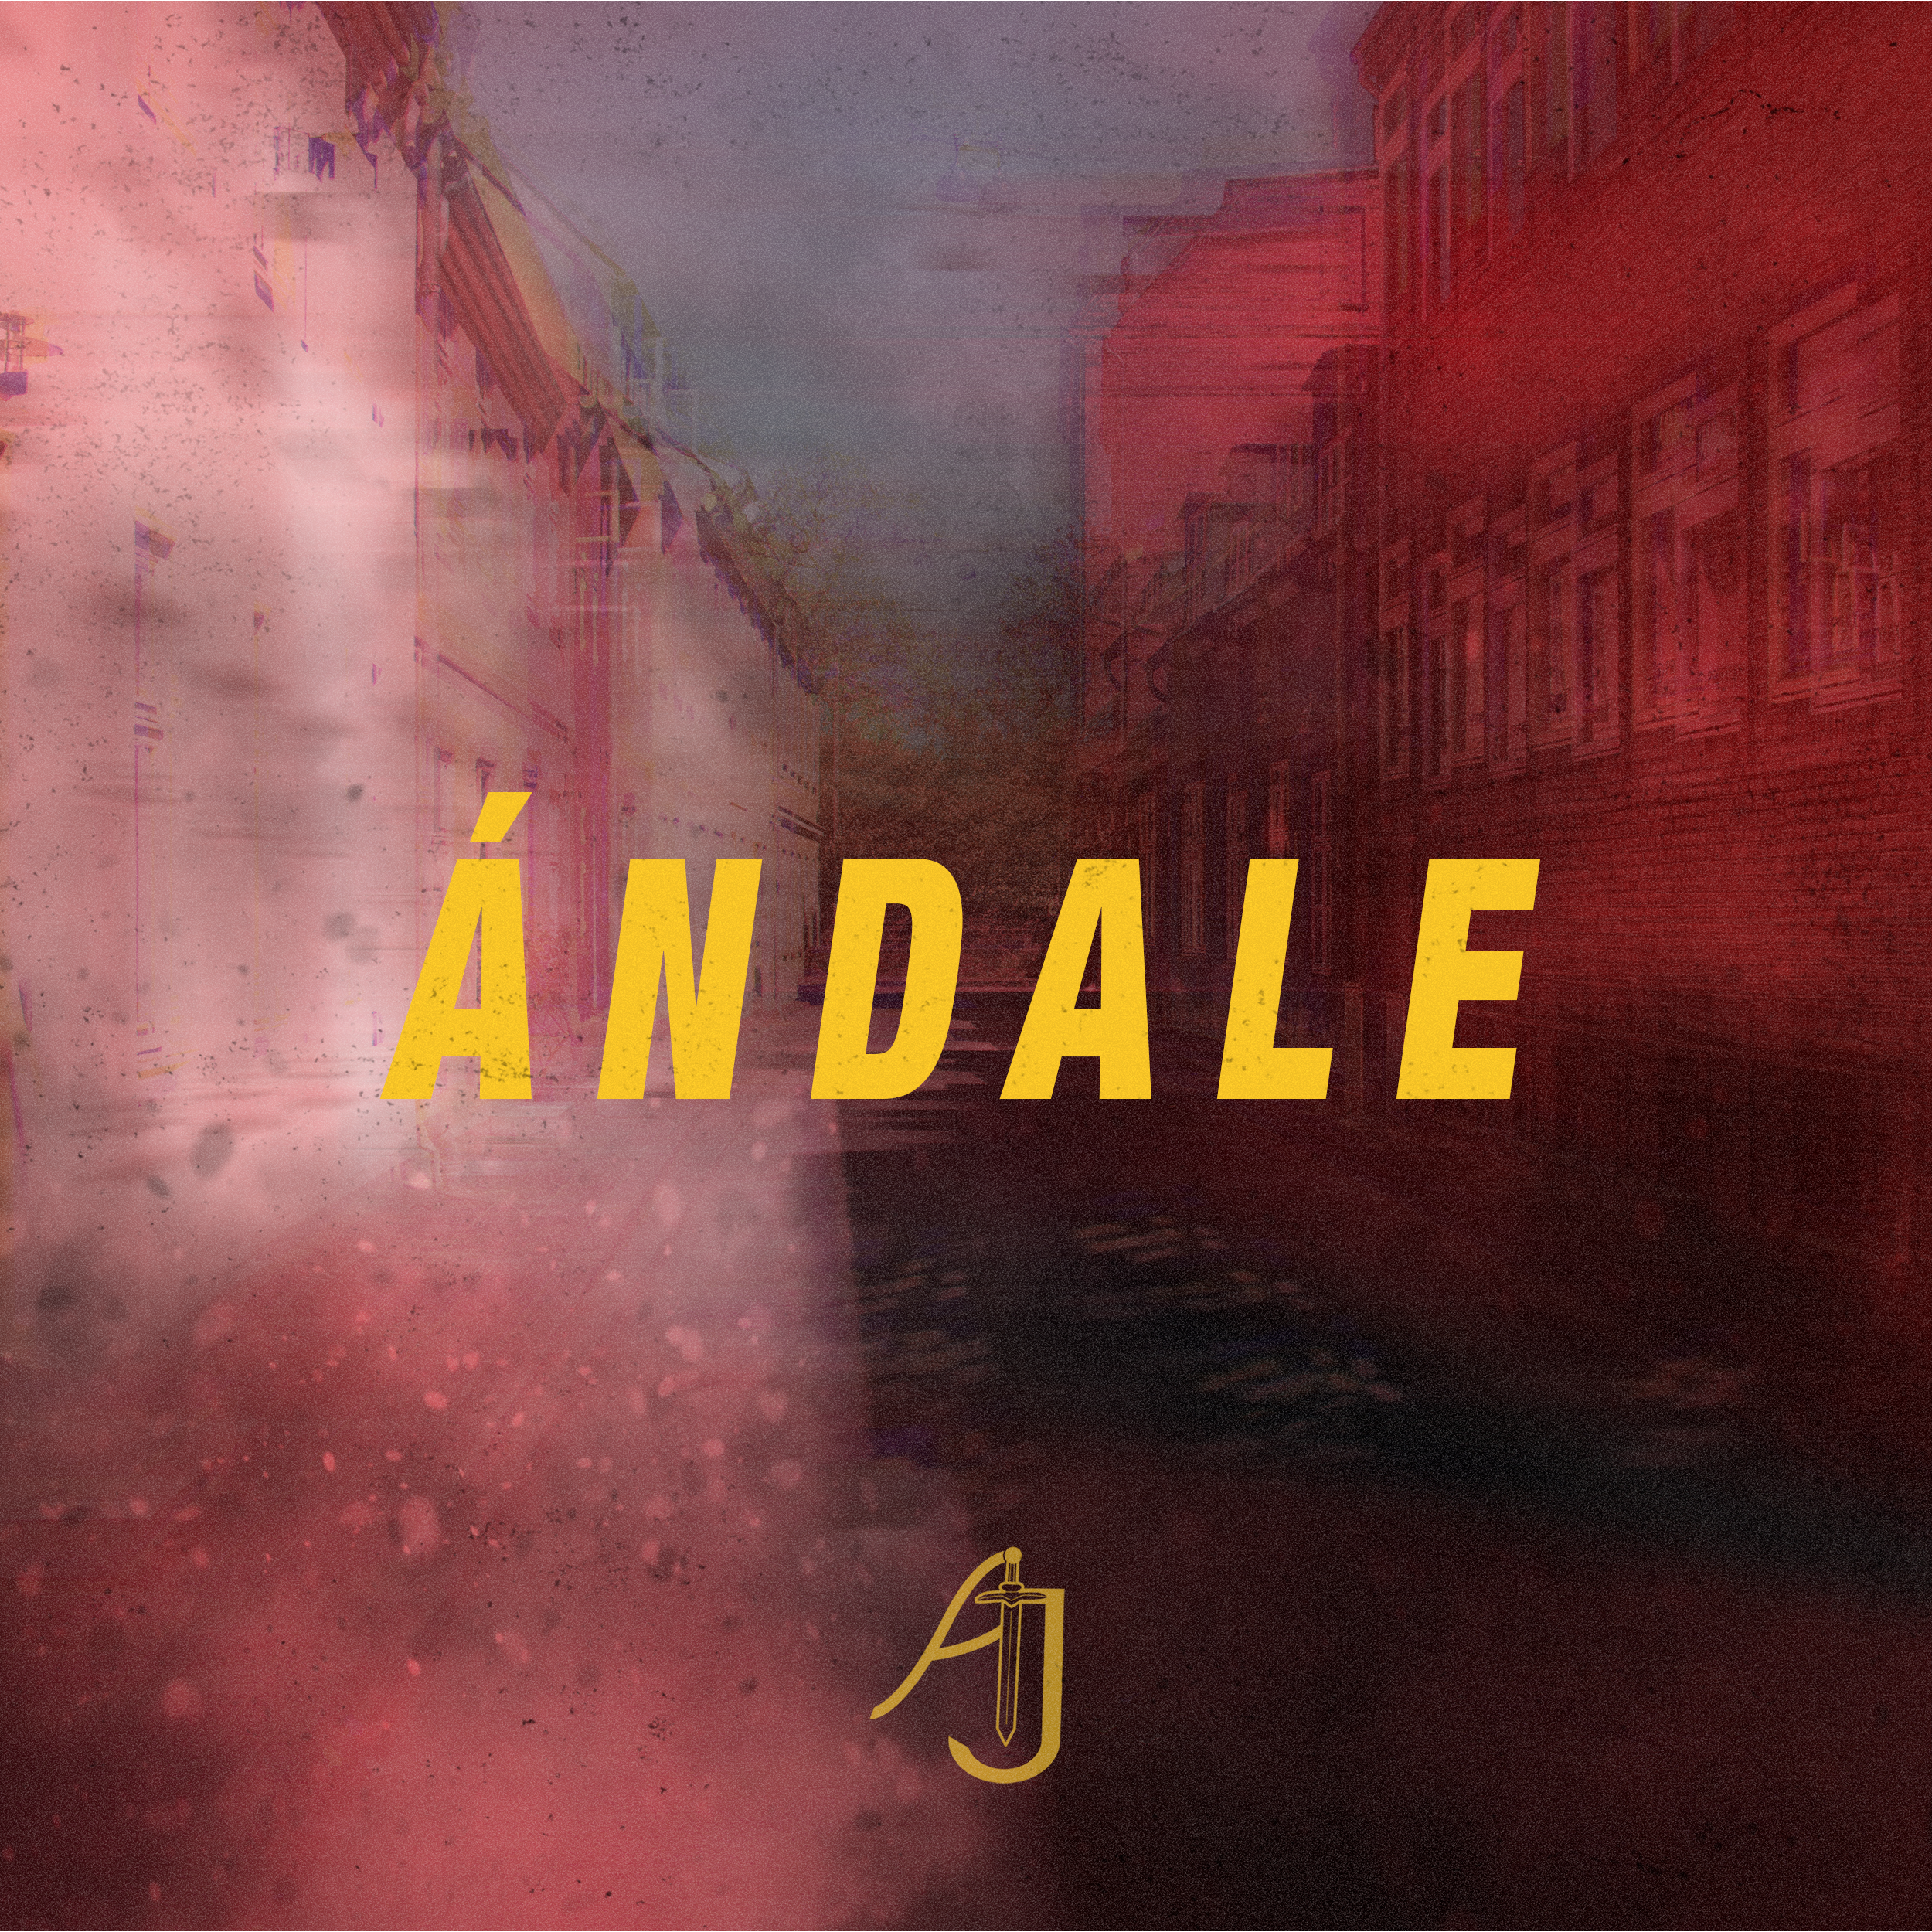 andale final